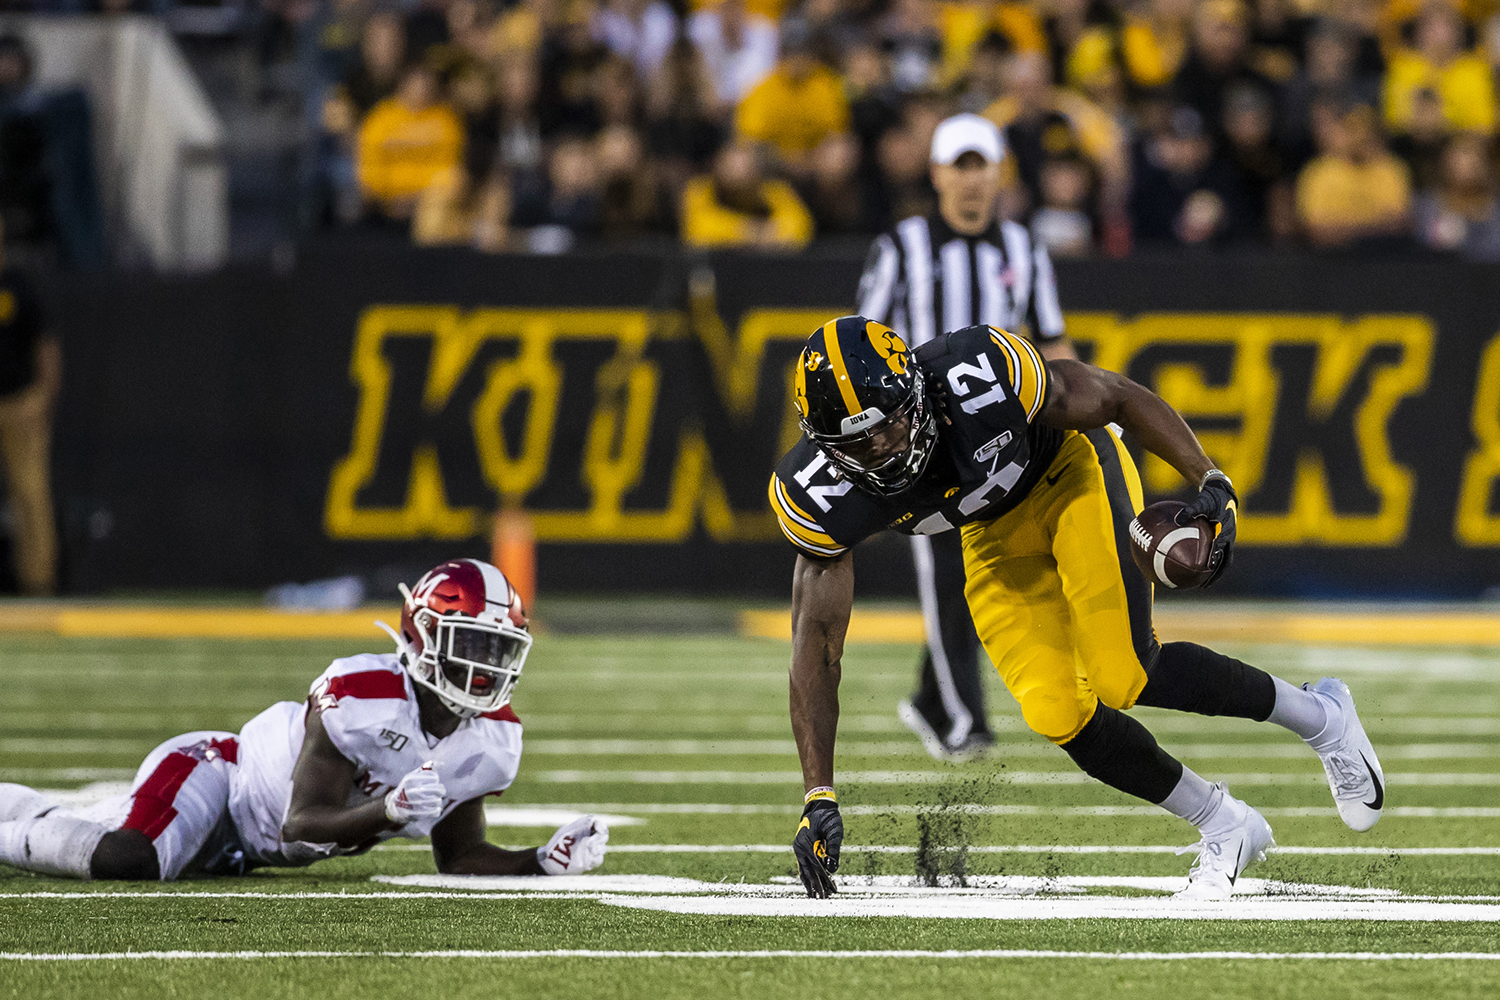 Iowa+wide+receiver+Brandon+Smith+runs+the+ball+during+the+Iowa+football+game+against+Miami+%28Ohio%29+at+Kinnick+Stadium+on+Saturday%2C+August+31%2C+2019.+The+Hawkeyes+defeated+the+Redhawks+38-14.